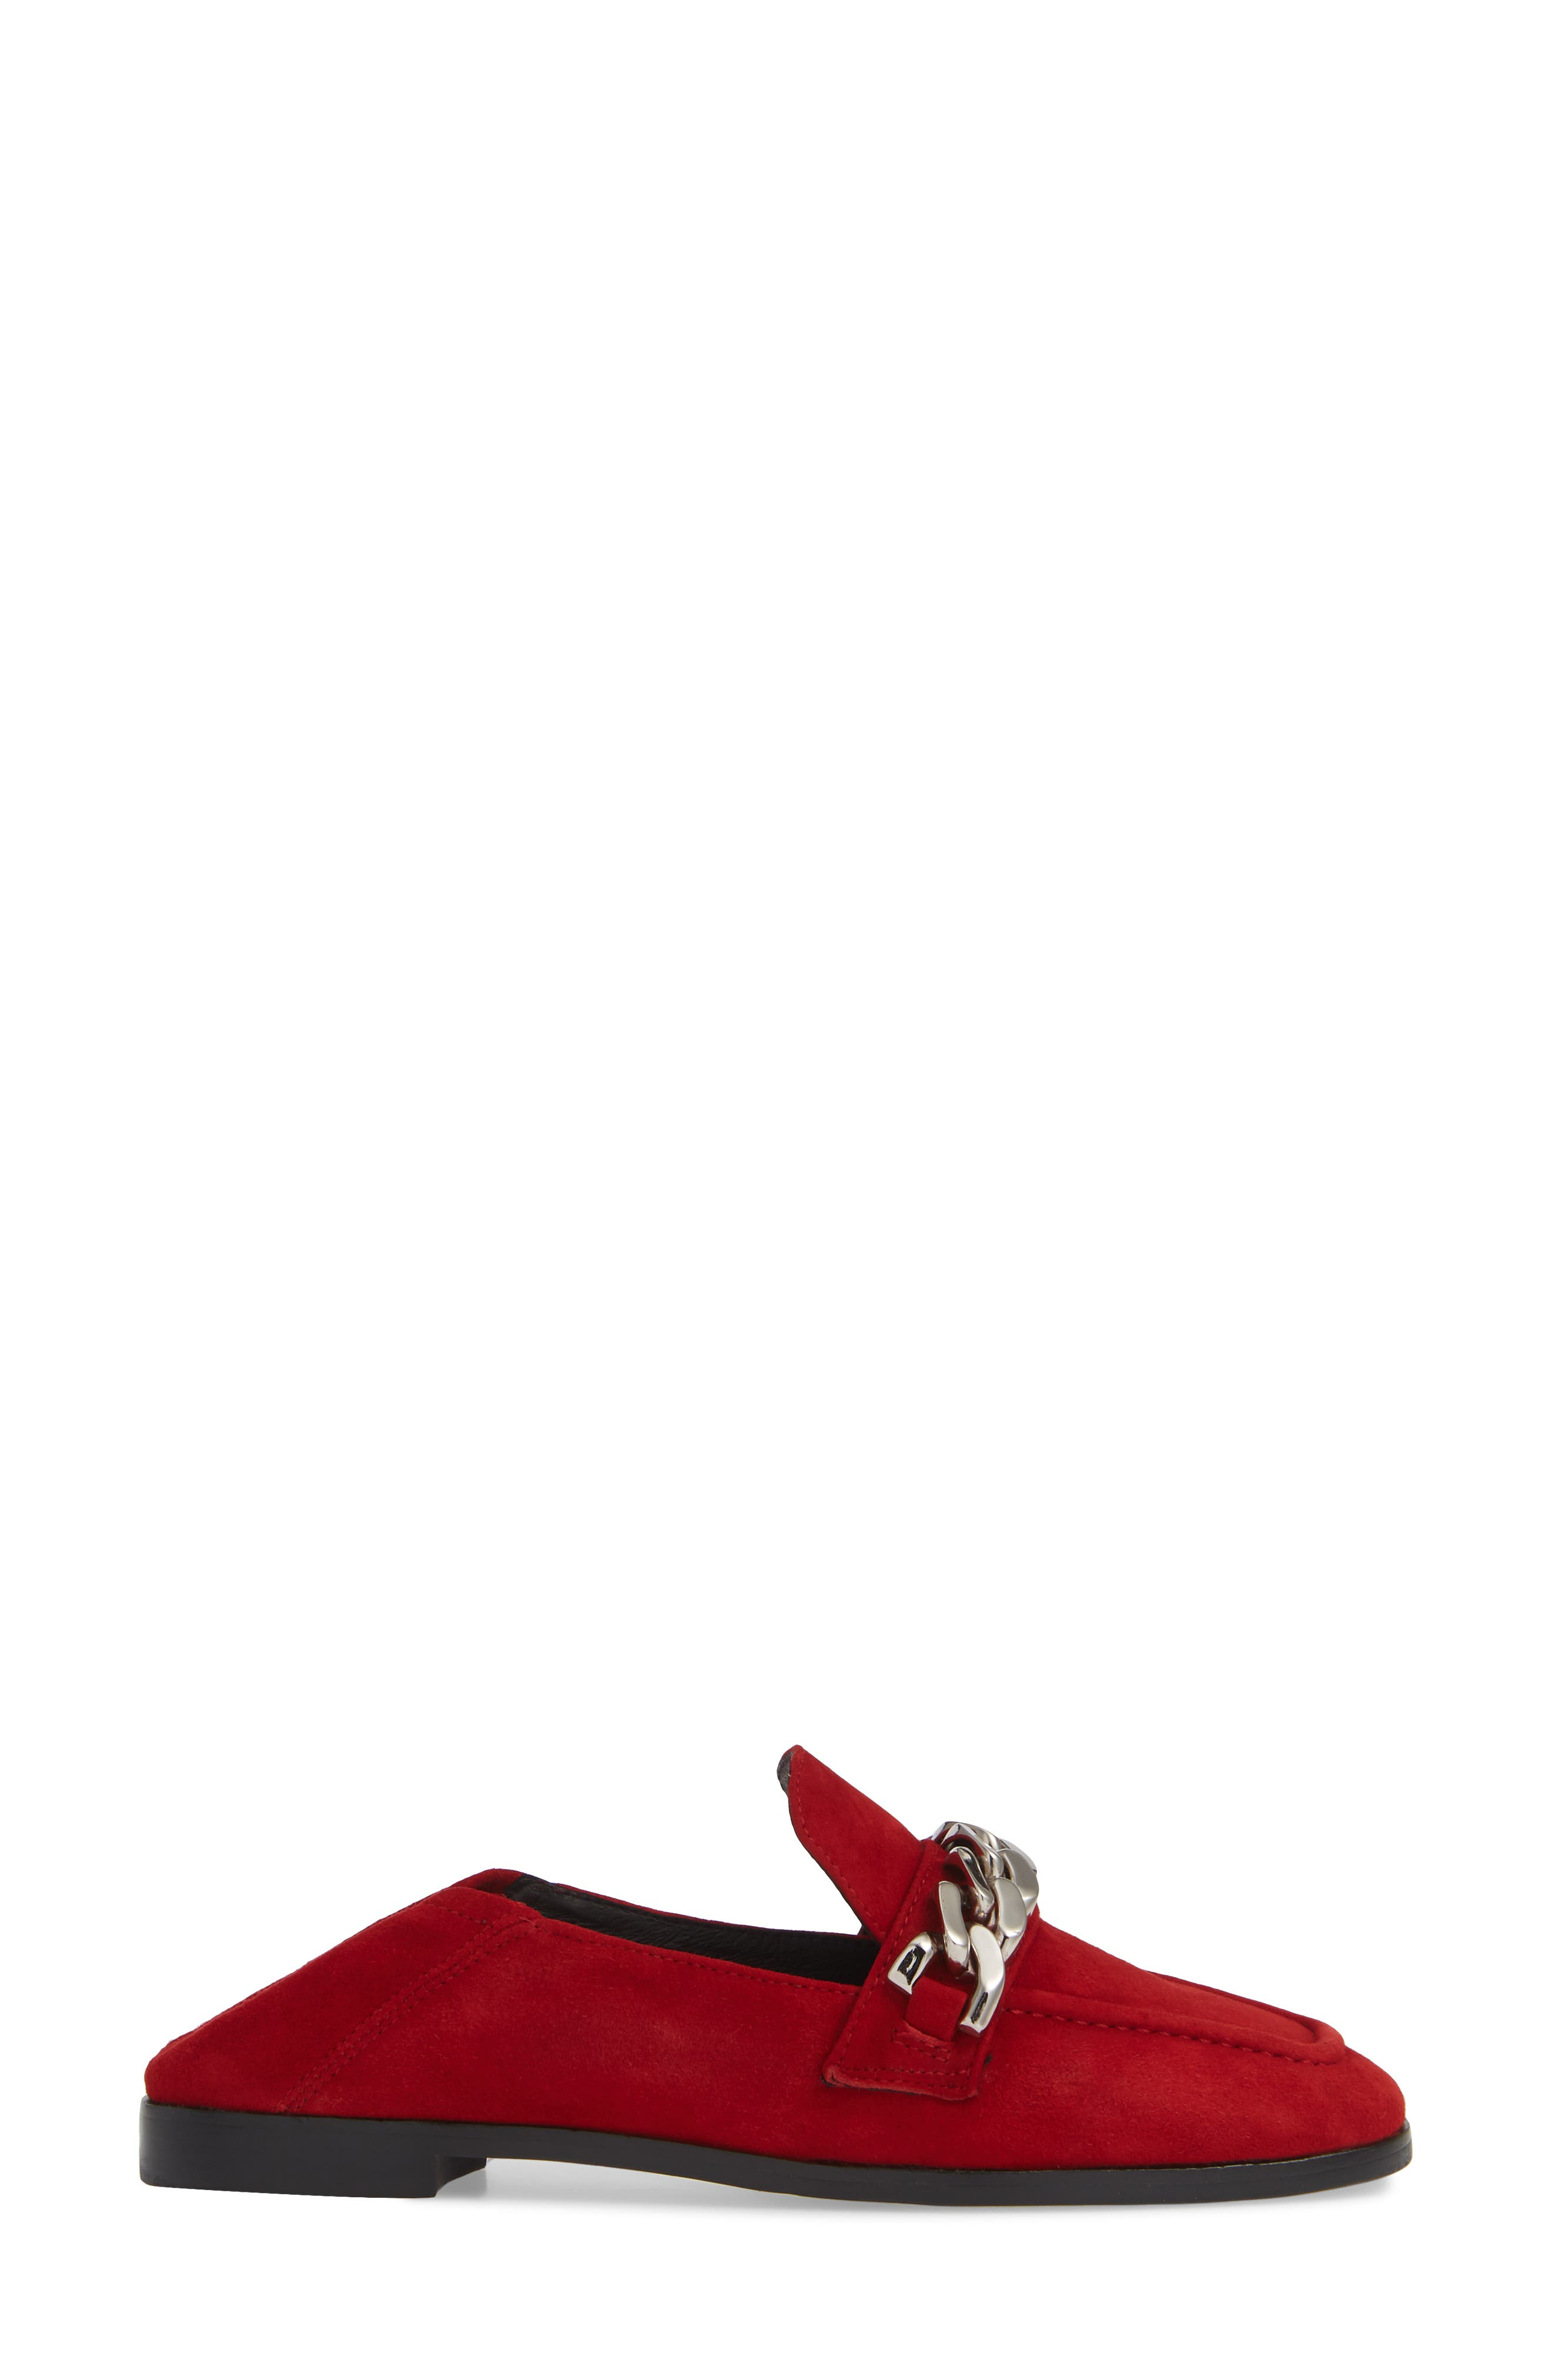 Jesse Convertible Heel Loafer,                             Alternate thumbnail 4, color,                             RED SUEDE SILVER